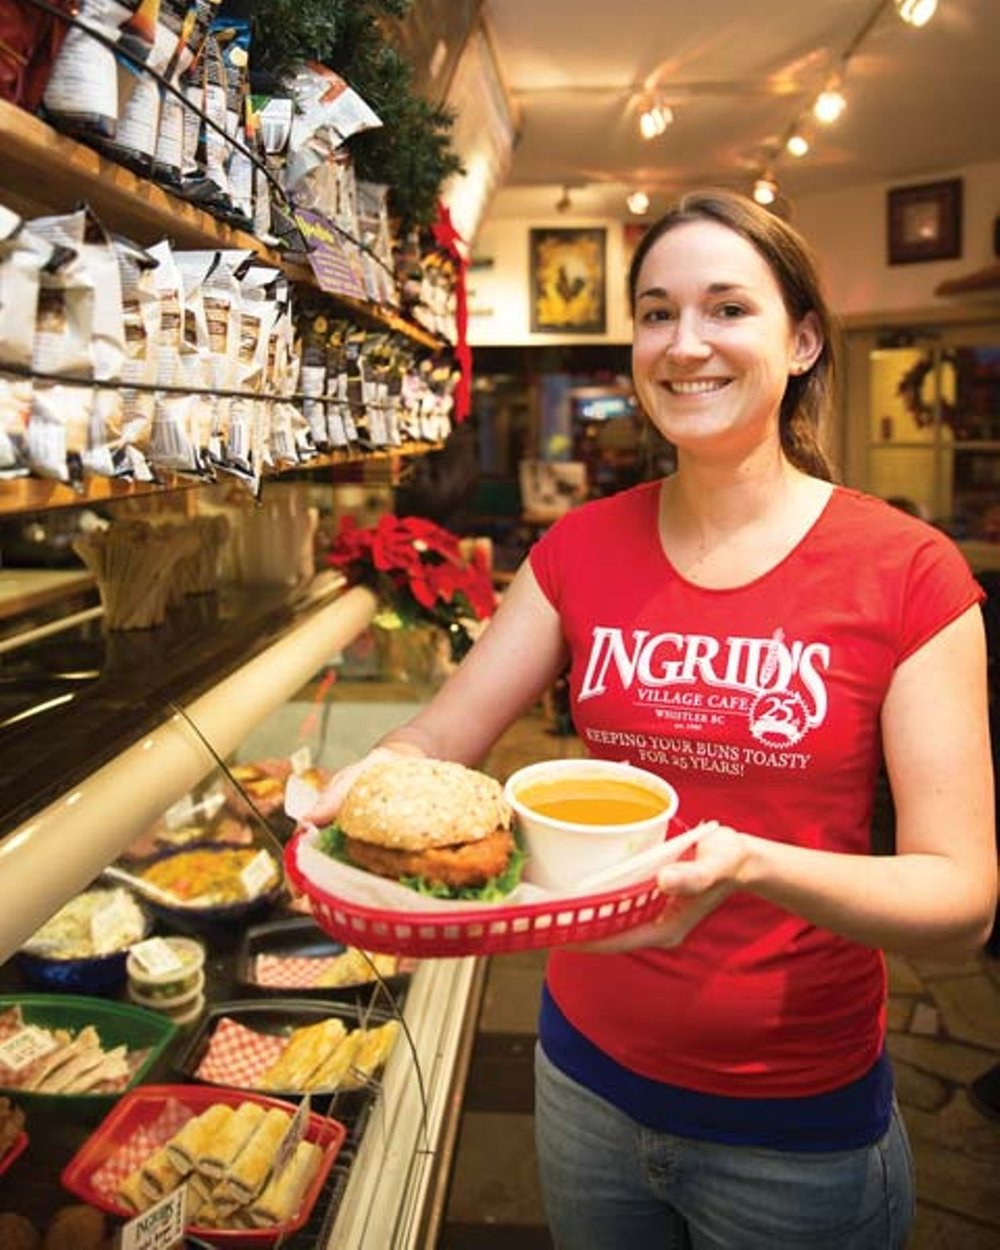 Ingrids - This vegetarian and vegan friendly café is locally owned and has been in Whistler for over 20 years. Ingrid's specializes in home style cooking. You can choose from meat or vegetarian burgers, soups, sandwiches and wraps for lunch. They also have a classic breakfast menu if you are looking for a hearty breakfast. They have homemade, organic muesli as well! Their menu is very diverse and all of their food is reasonably priced. We recommend: Garden Veggie BurgerLocation: 4305 Skiers Approach, Whistler, British Columbia V0N 1B4